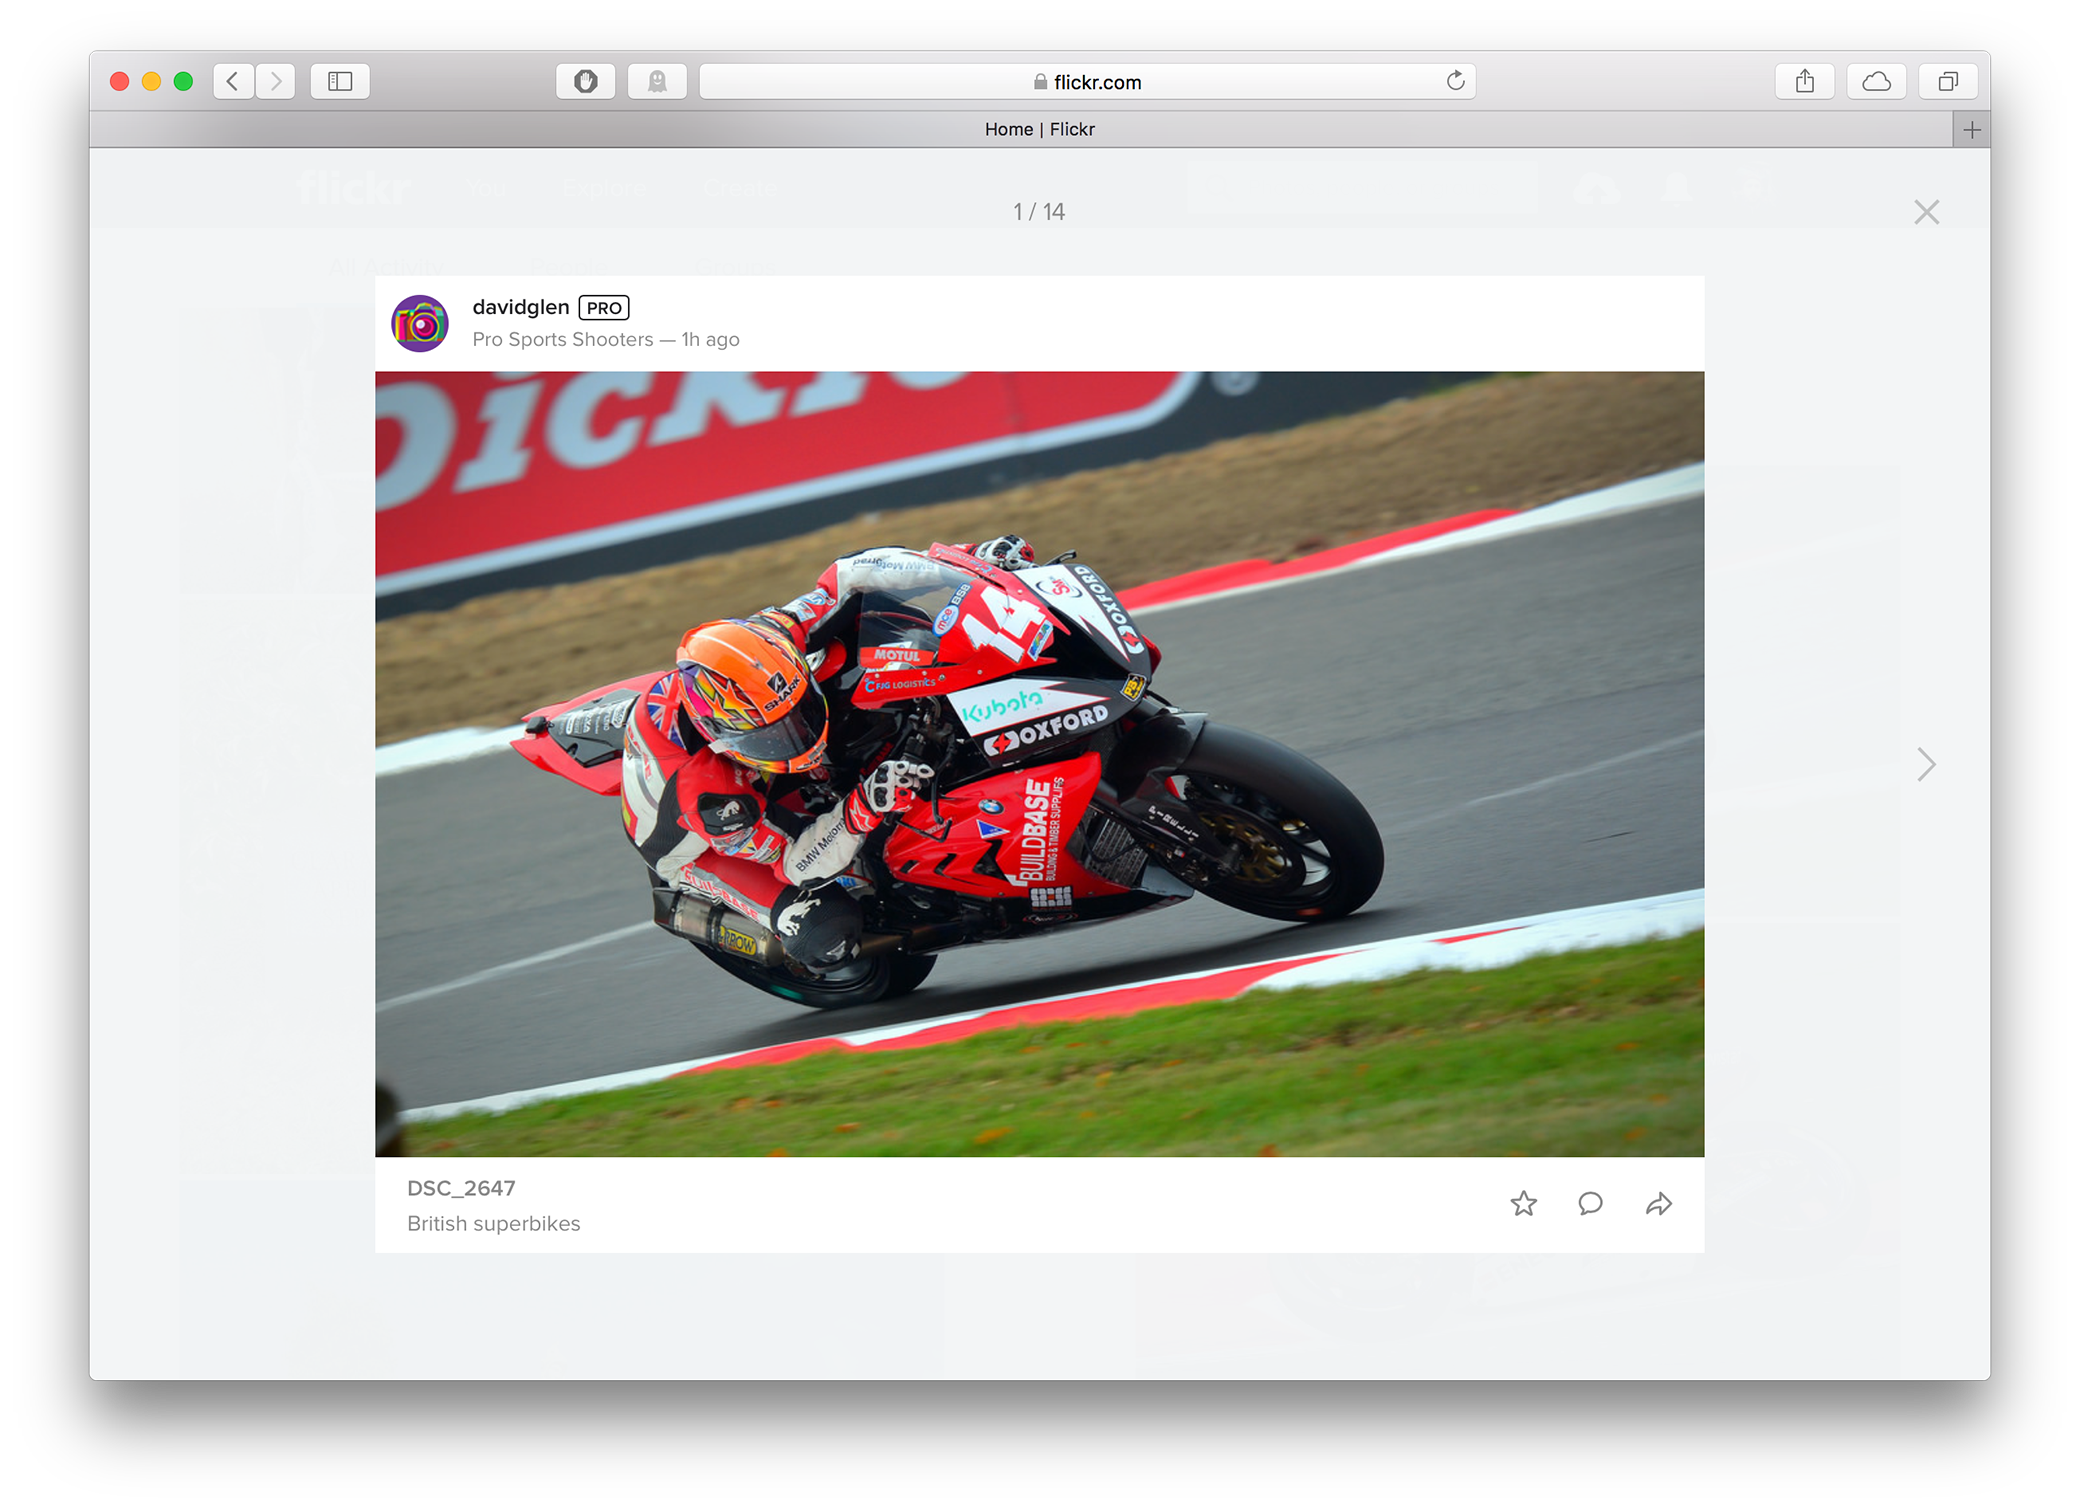 Pop-up view of a photo on the new Flickr homepage feed